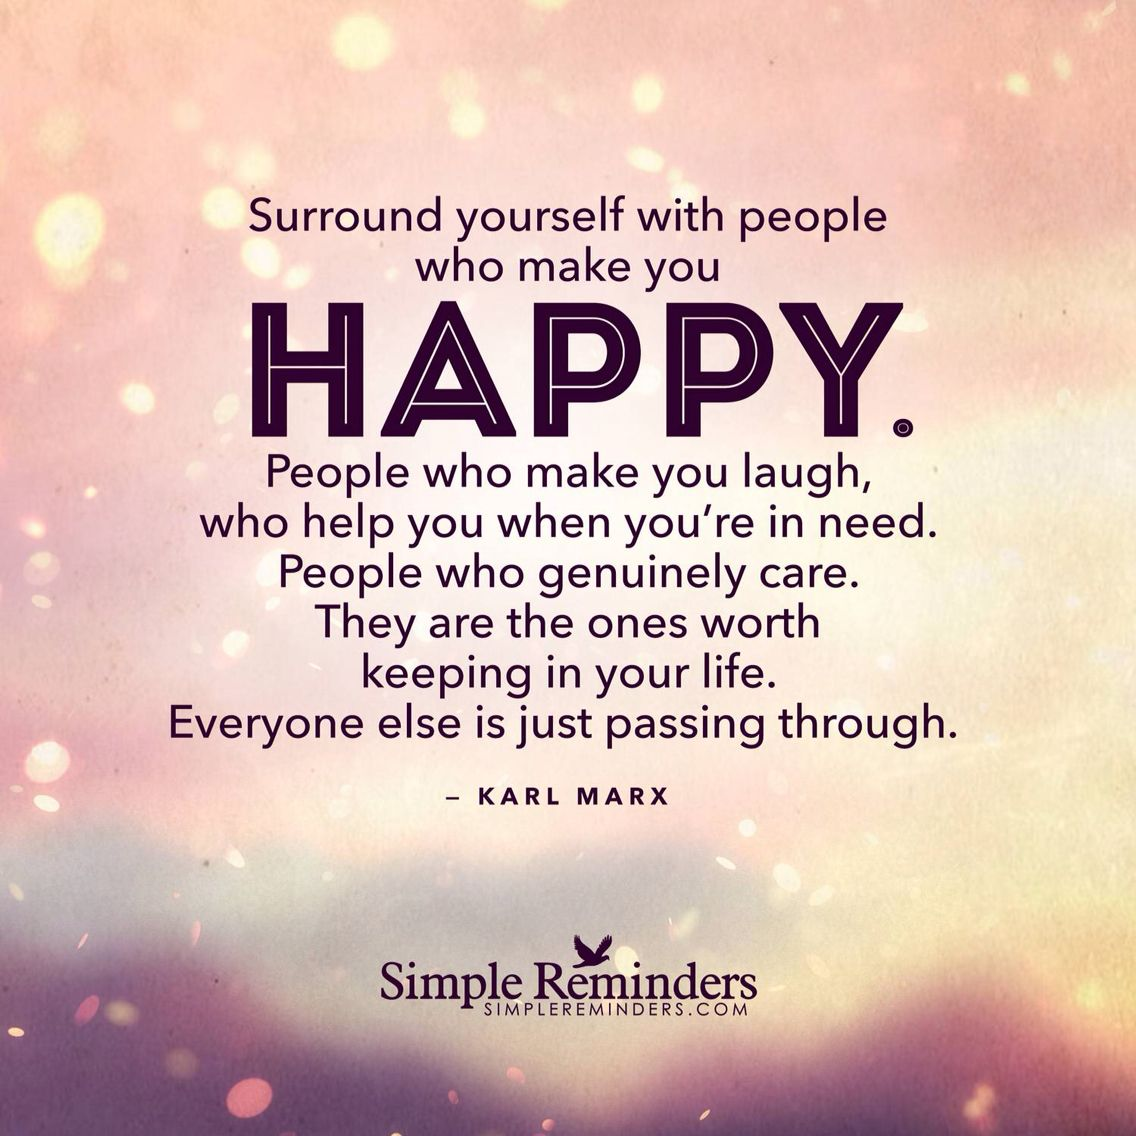 Surround yourself with people who make you happy! ❤️